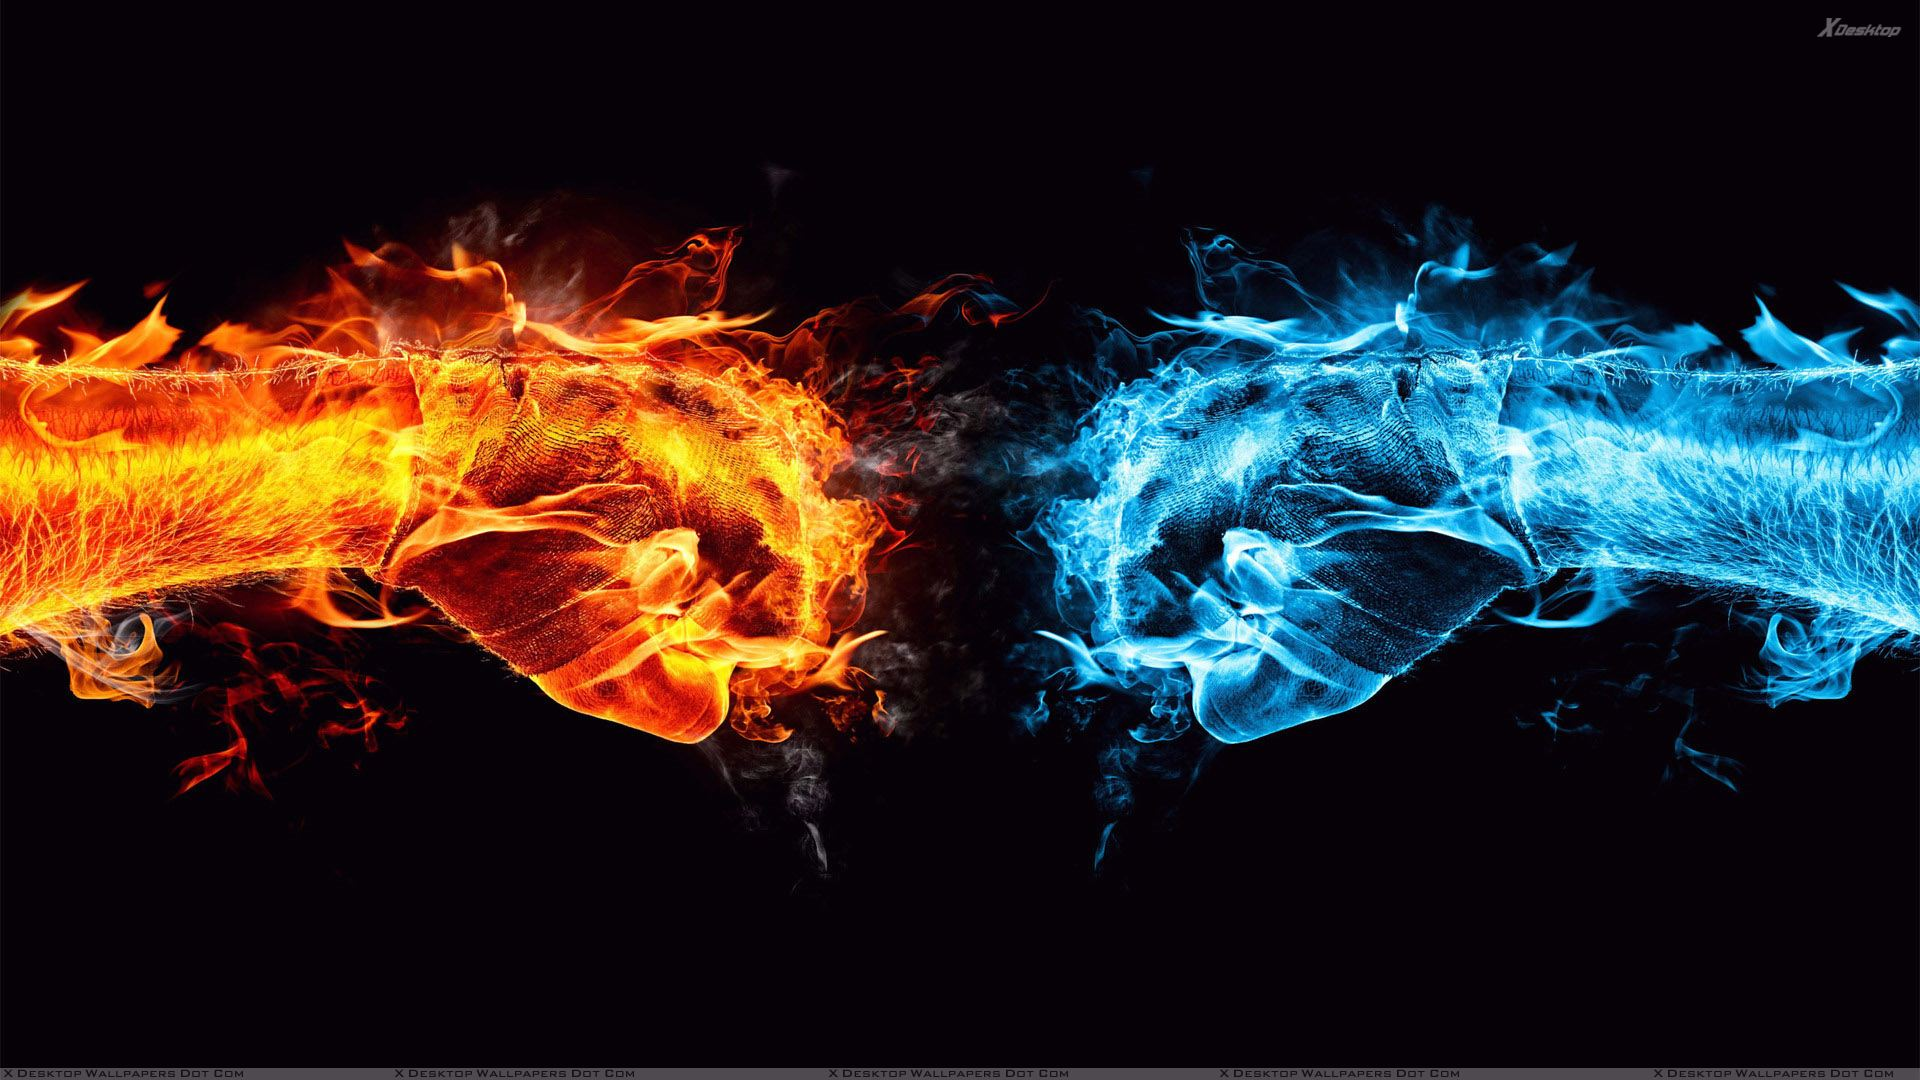 Cool Vs Hot Fists On Black Background Wallpaper